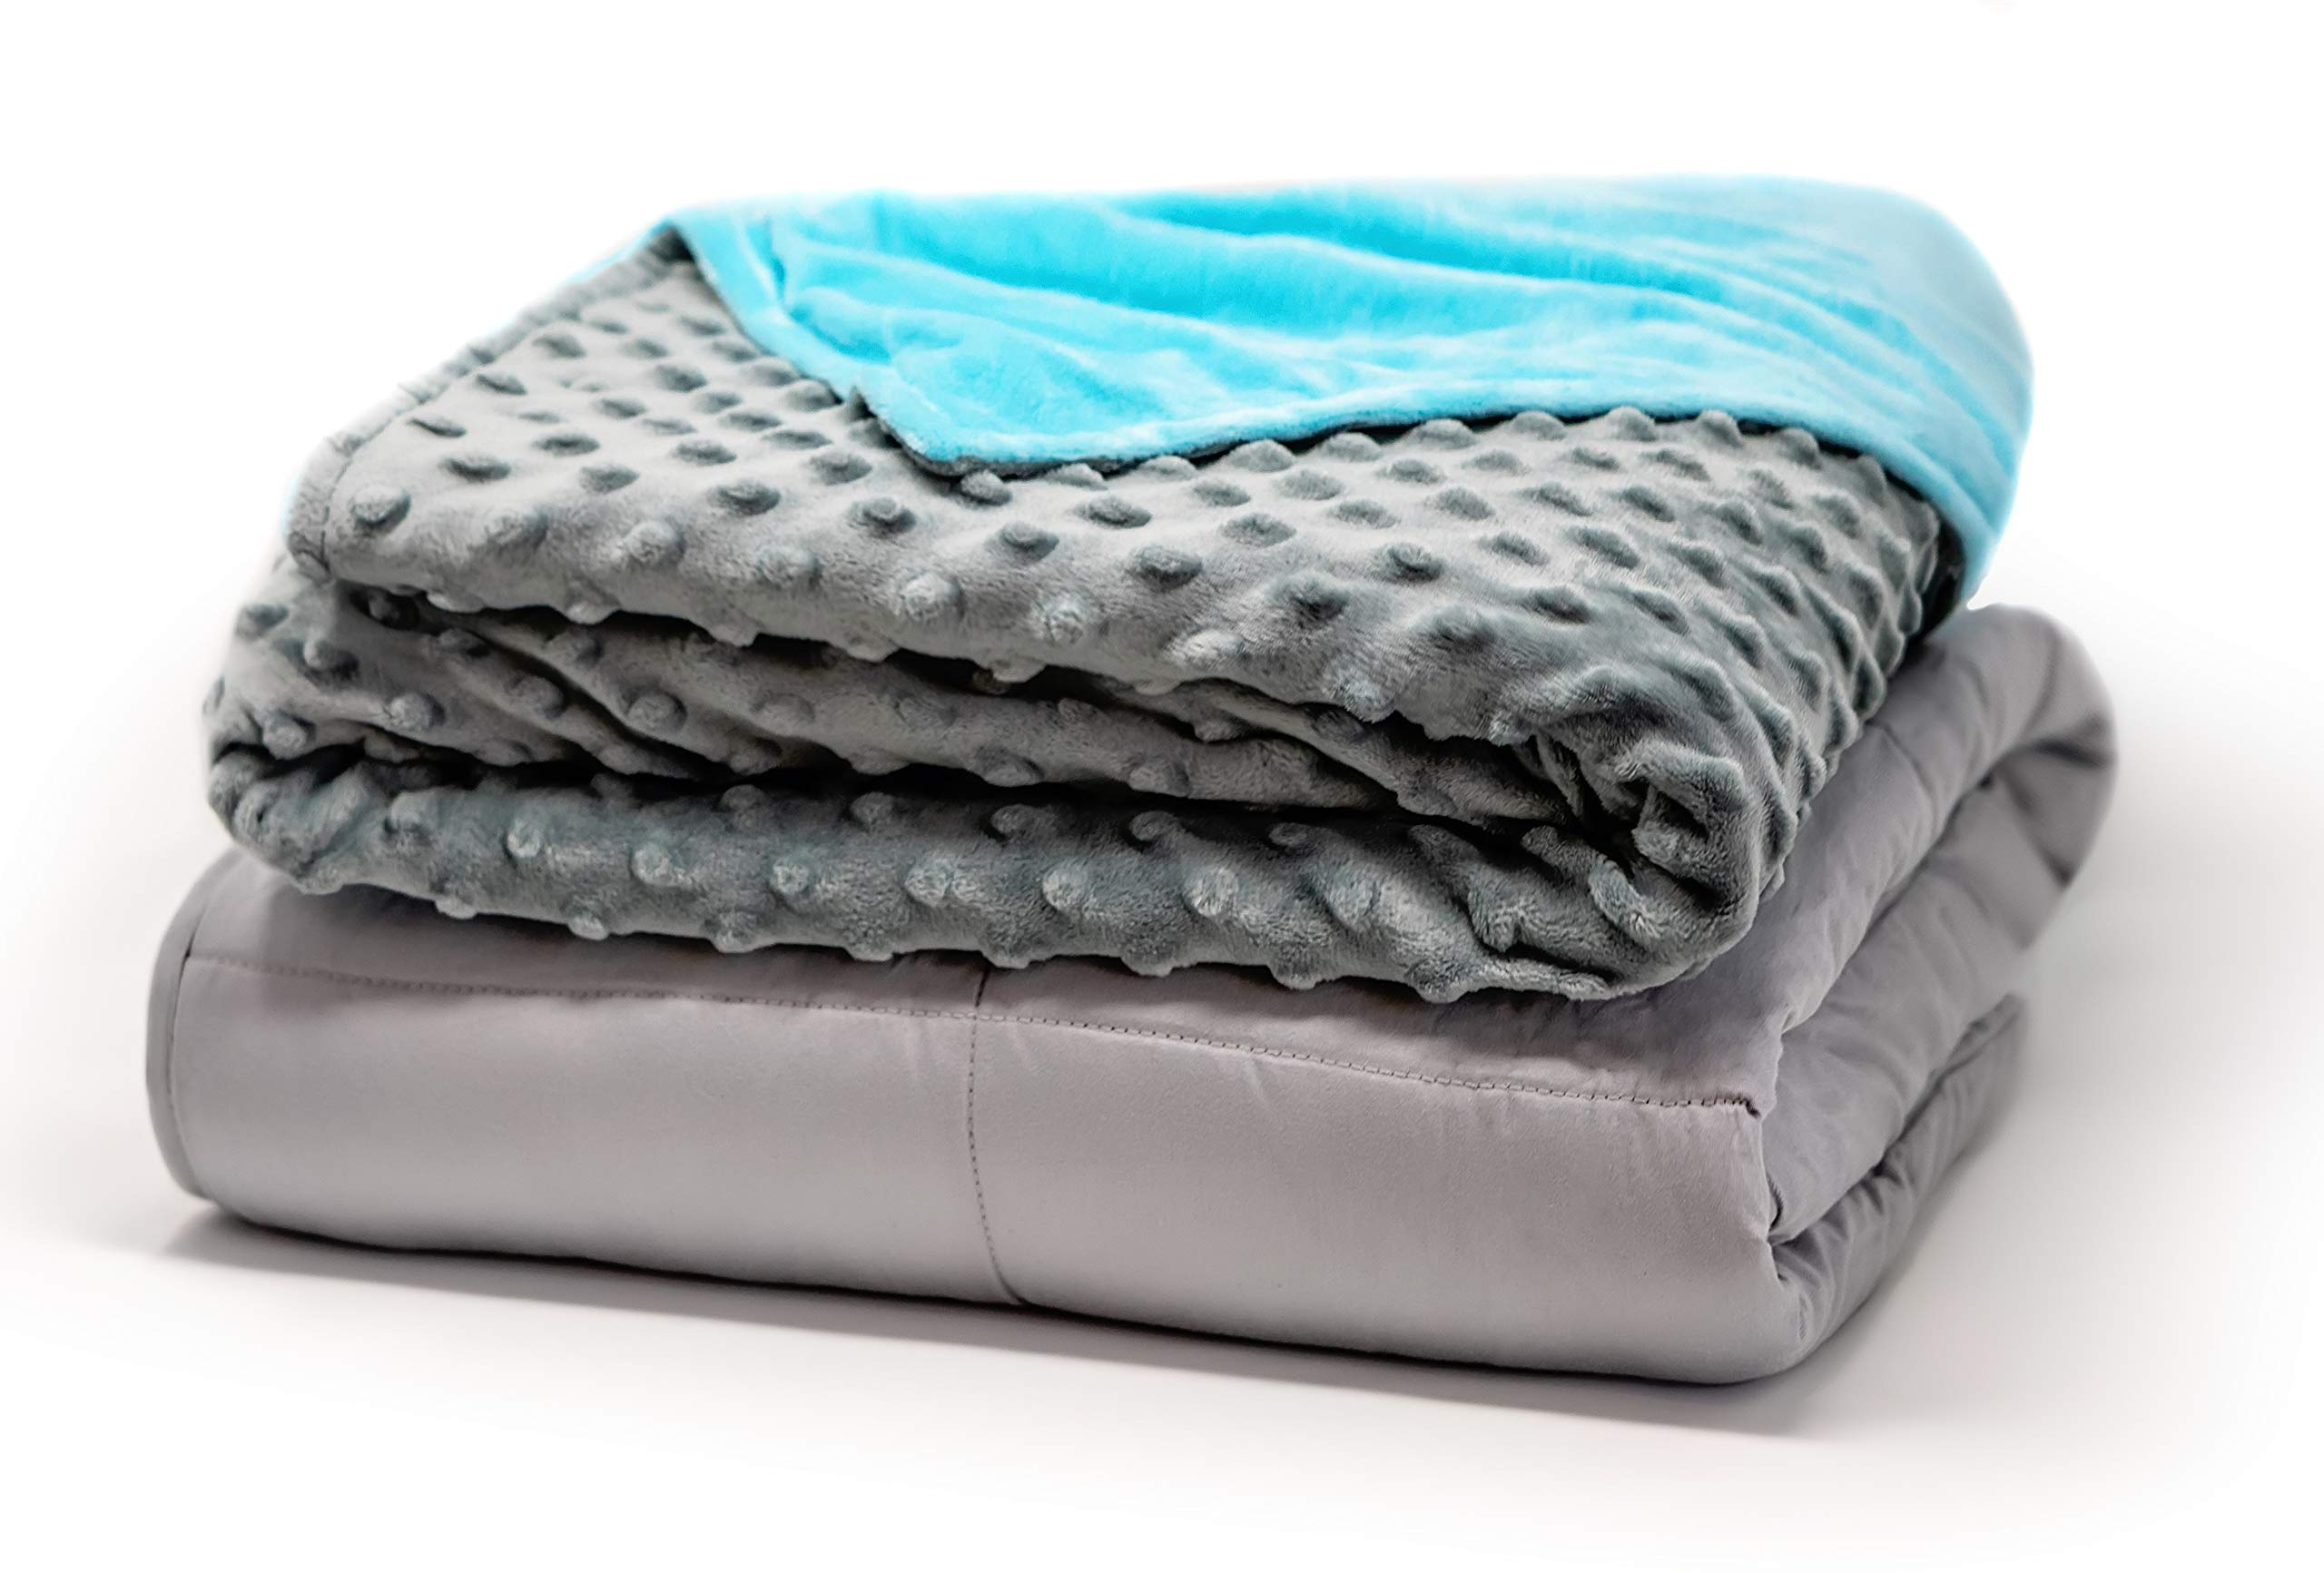 Soothing Company Weighted Blanket for Kids | Weight: 8 lbs | Size: 41''x60 Cotton with Glass Beads | Child Heavy Comforter with Removable Soft Minky Duvet Cover | Blue/Grey by Soothing Company